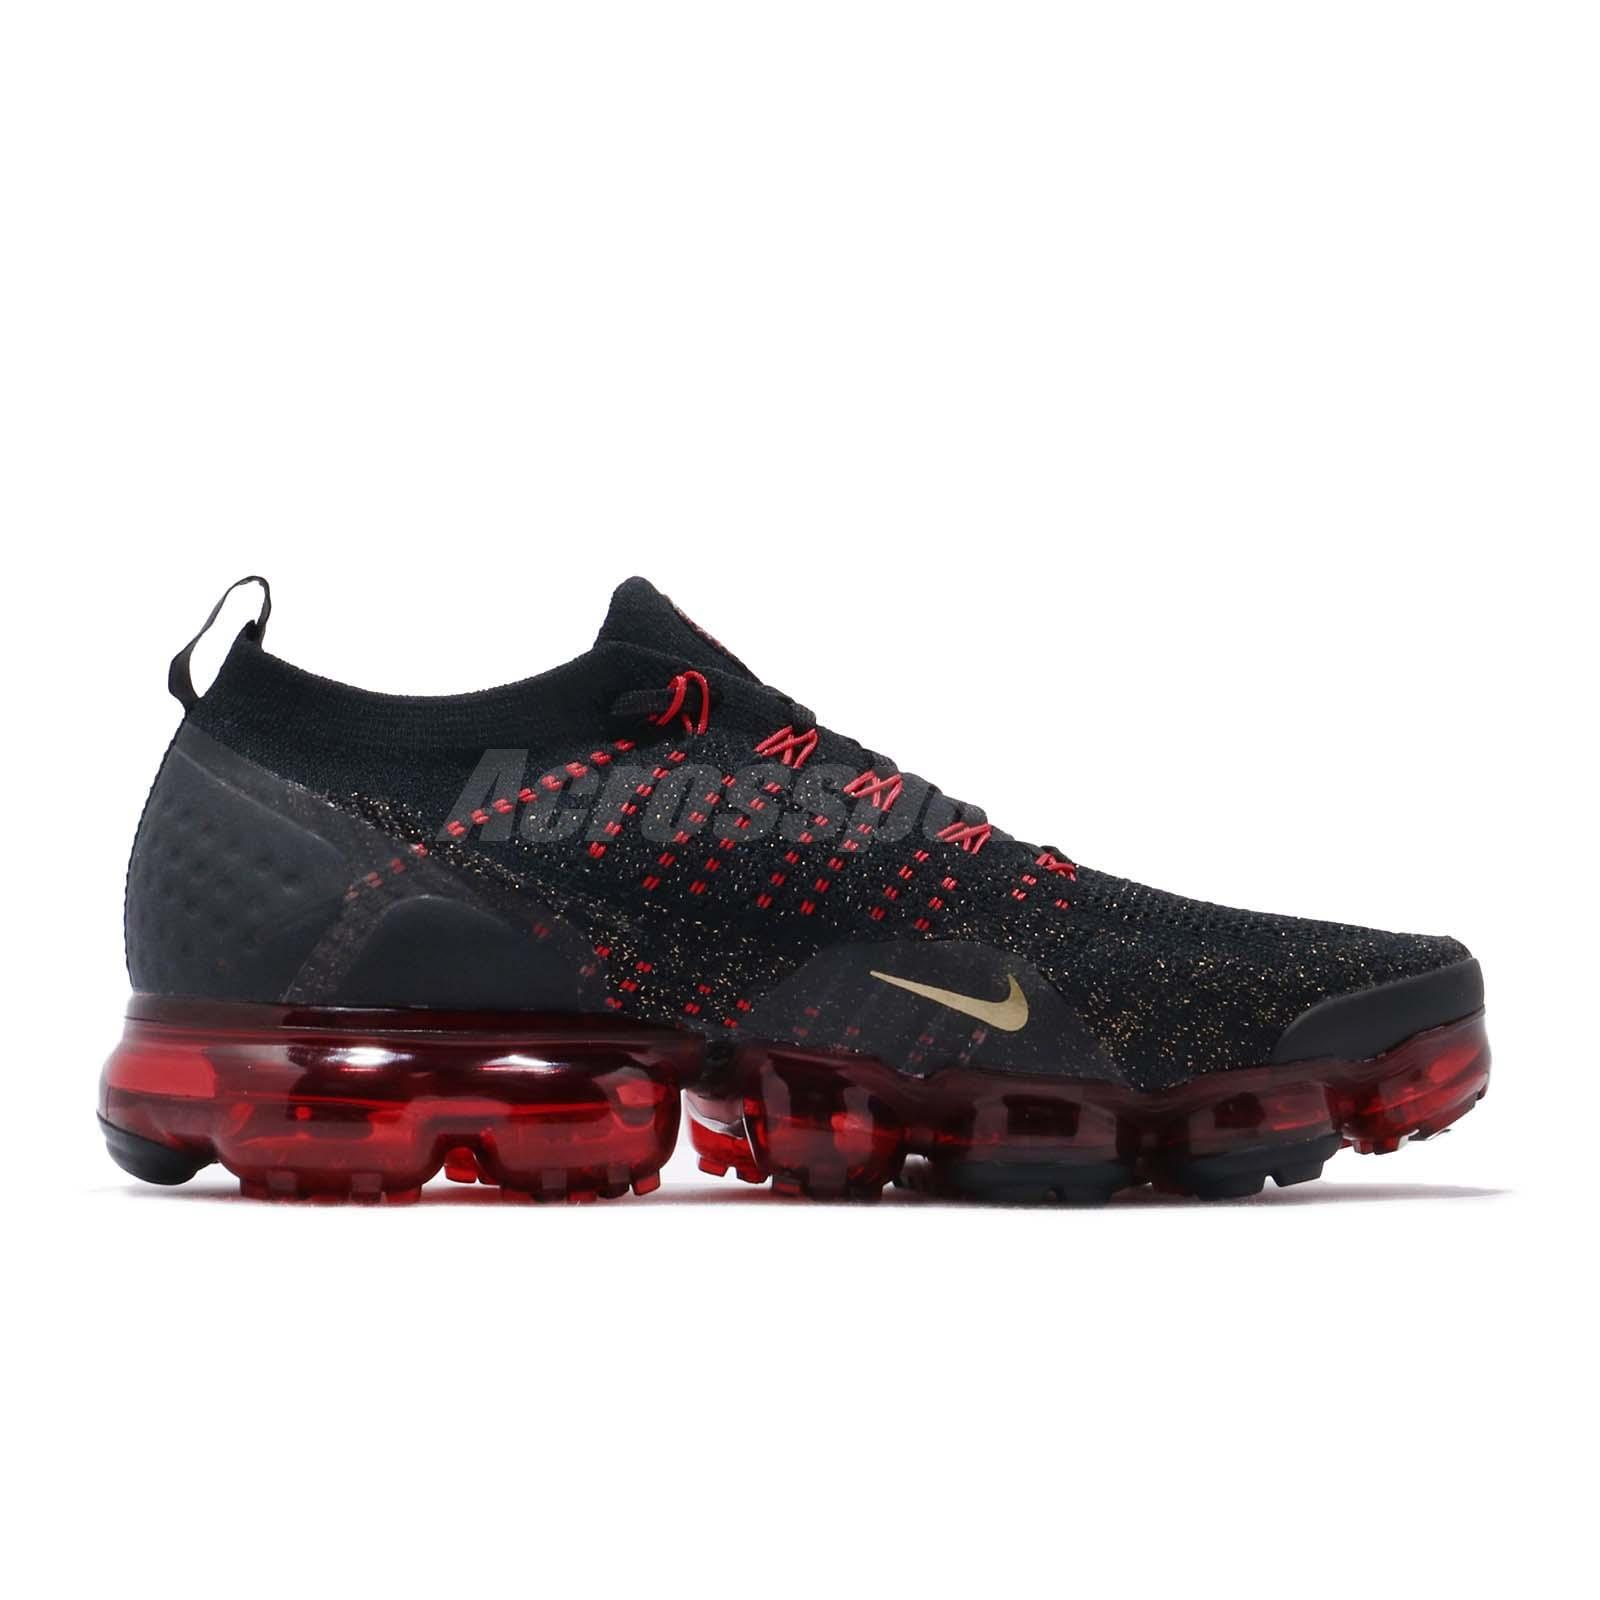 a4ab21648d59e Nike Air Vapormax FK 2 CNY Flyknit Chinese New Year Men Shoes ...